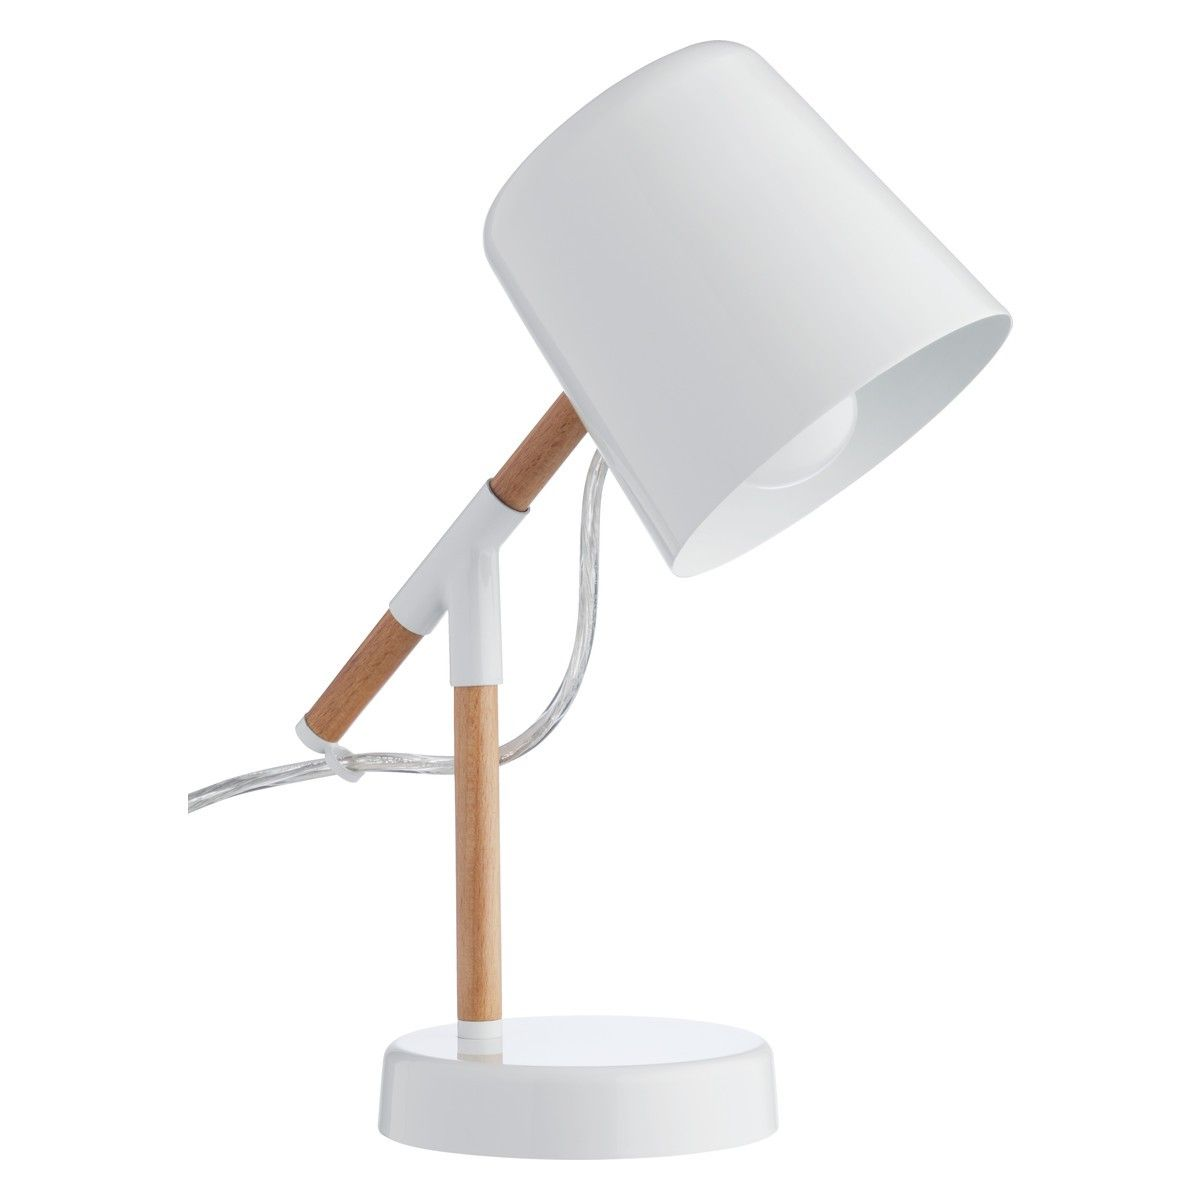 PEETA White metal and wood desk lamp – Lamps for Desk